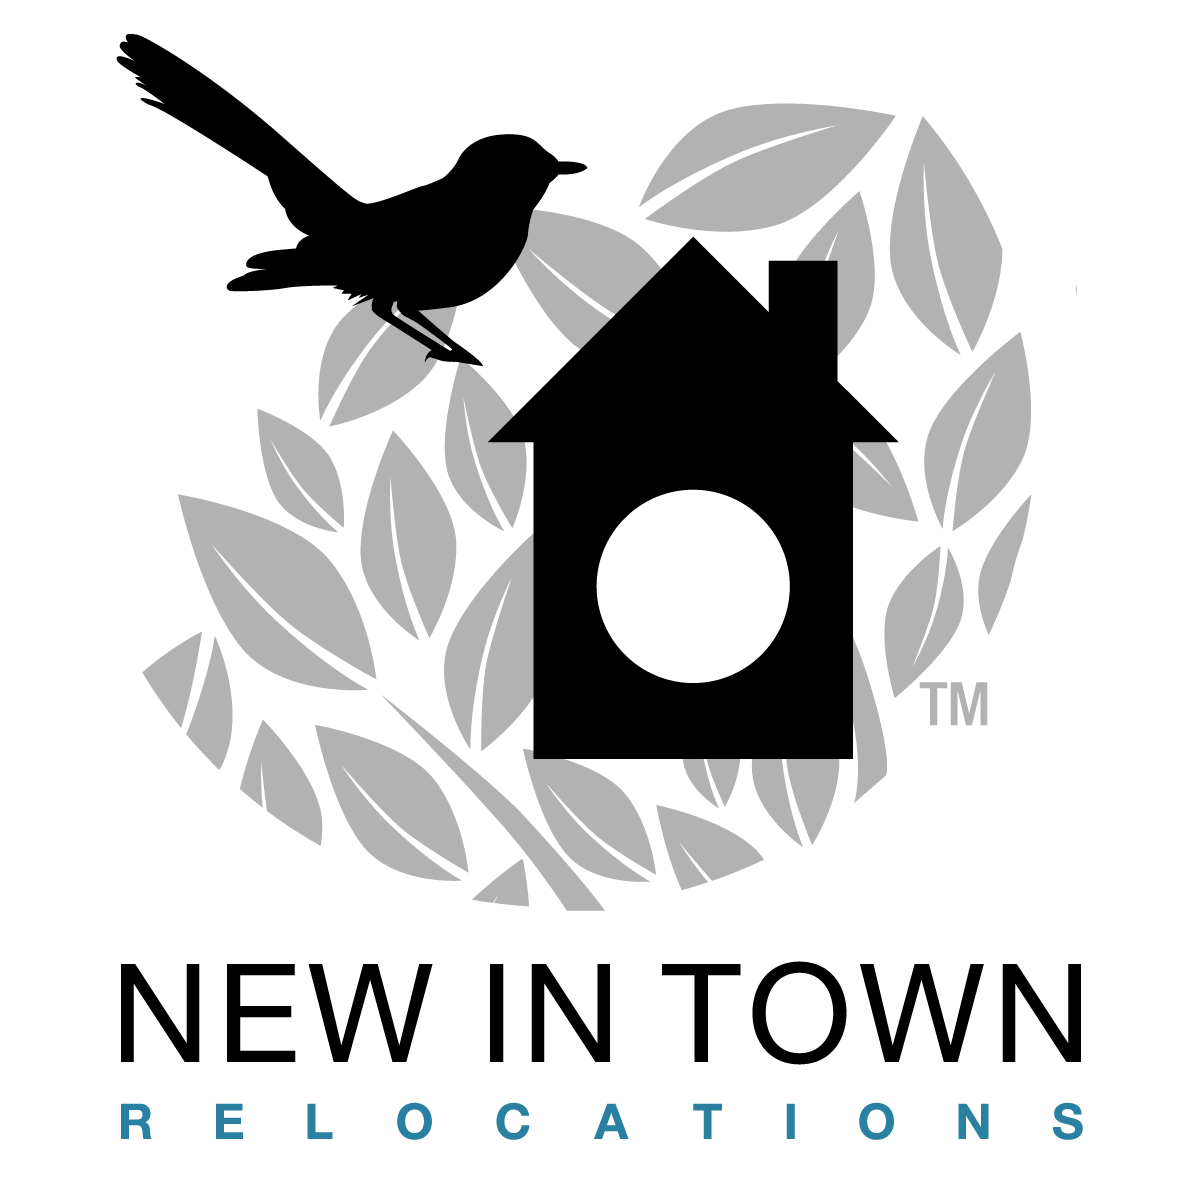 New In Town Executive Relocations Logo TM.jpg